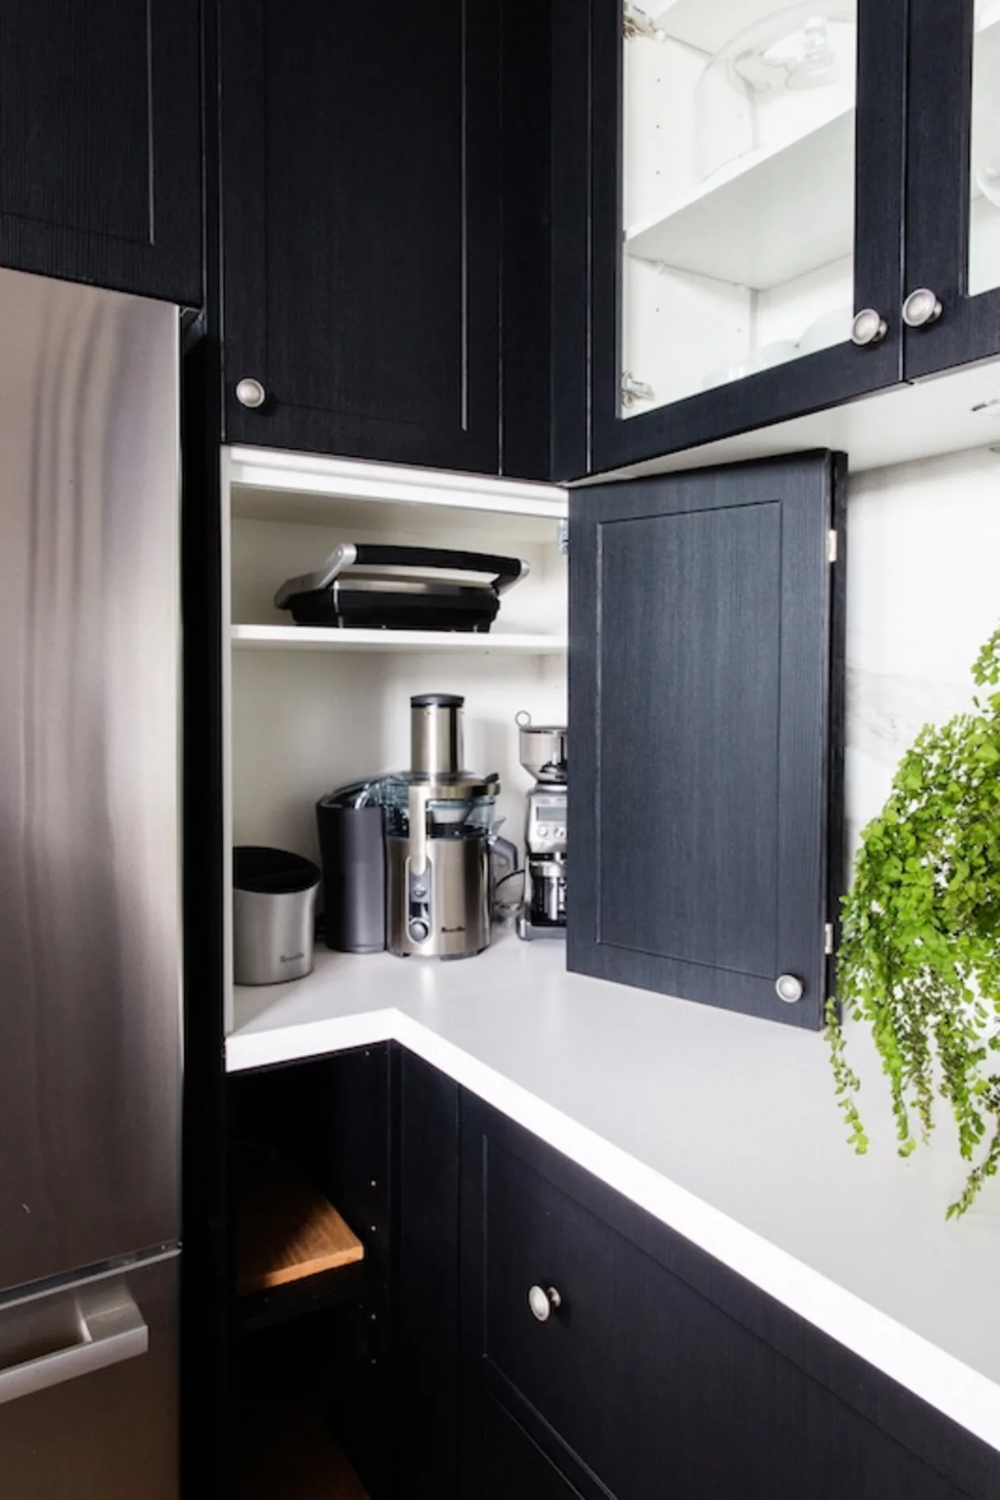 Corner Kitchen Cabinet Ideas That Transform This Awkward Space Into Something Useable